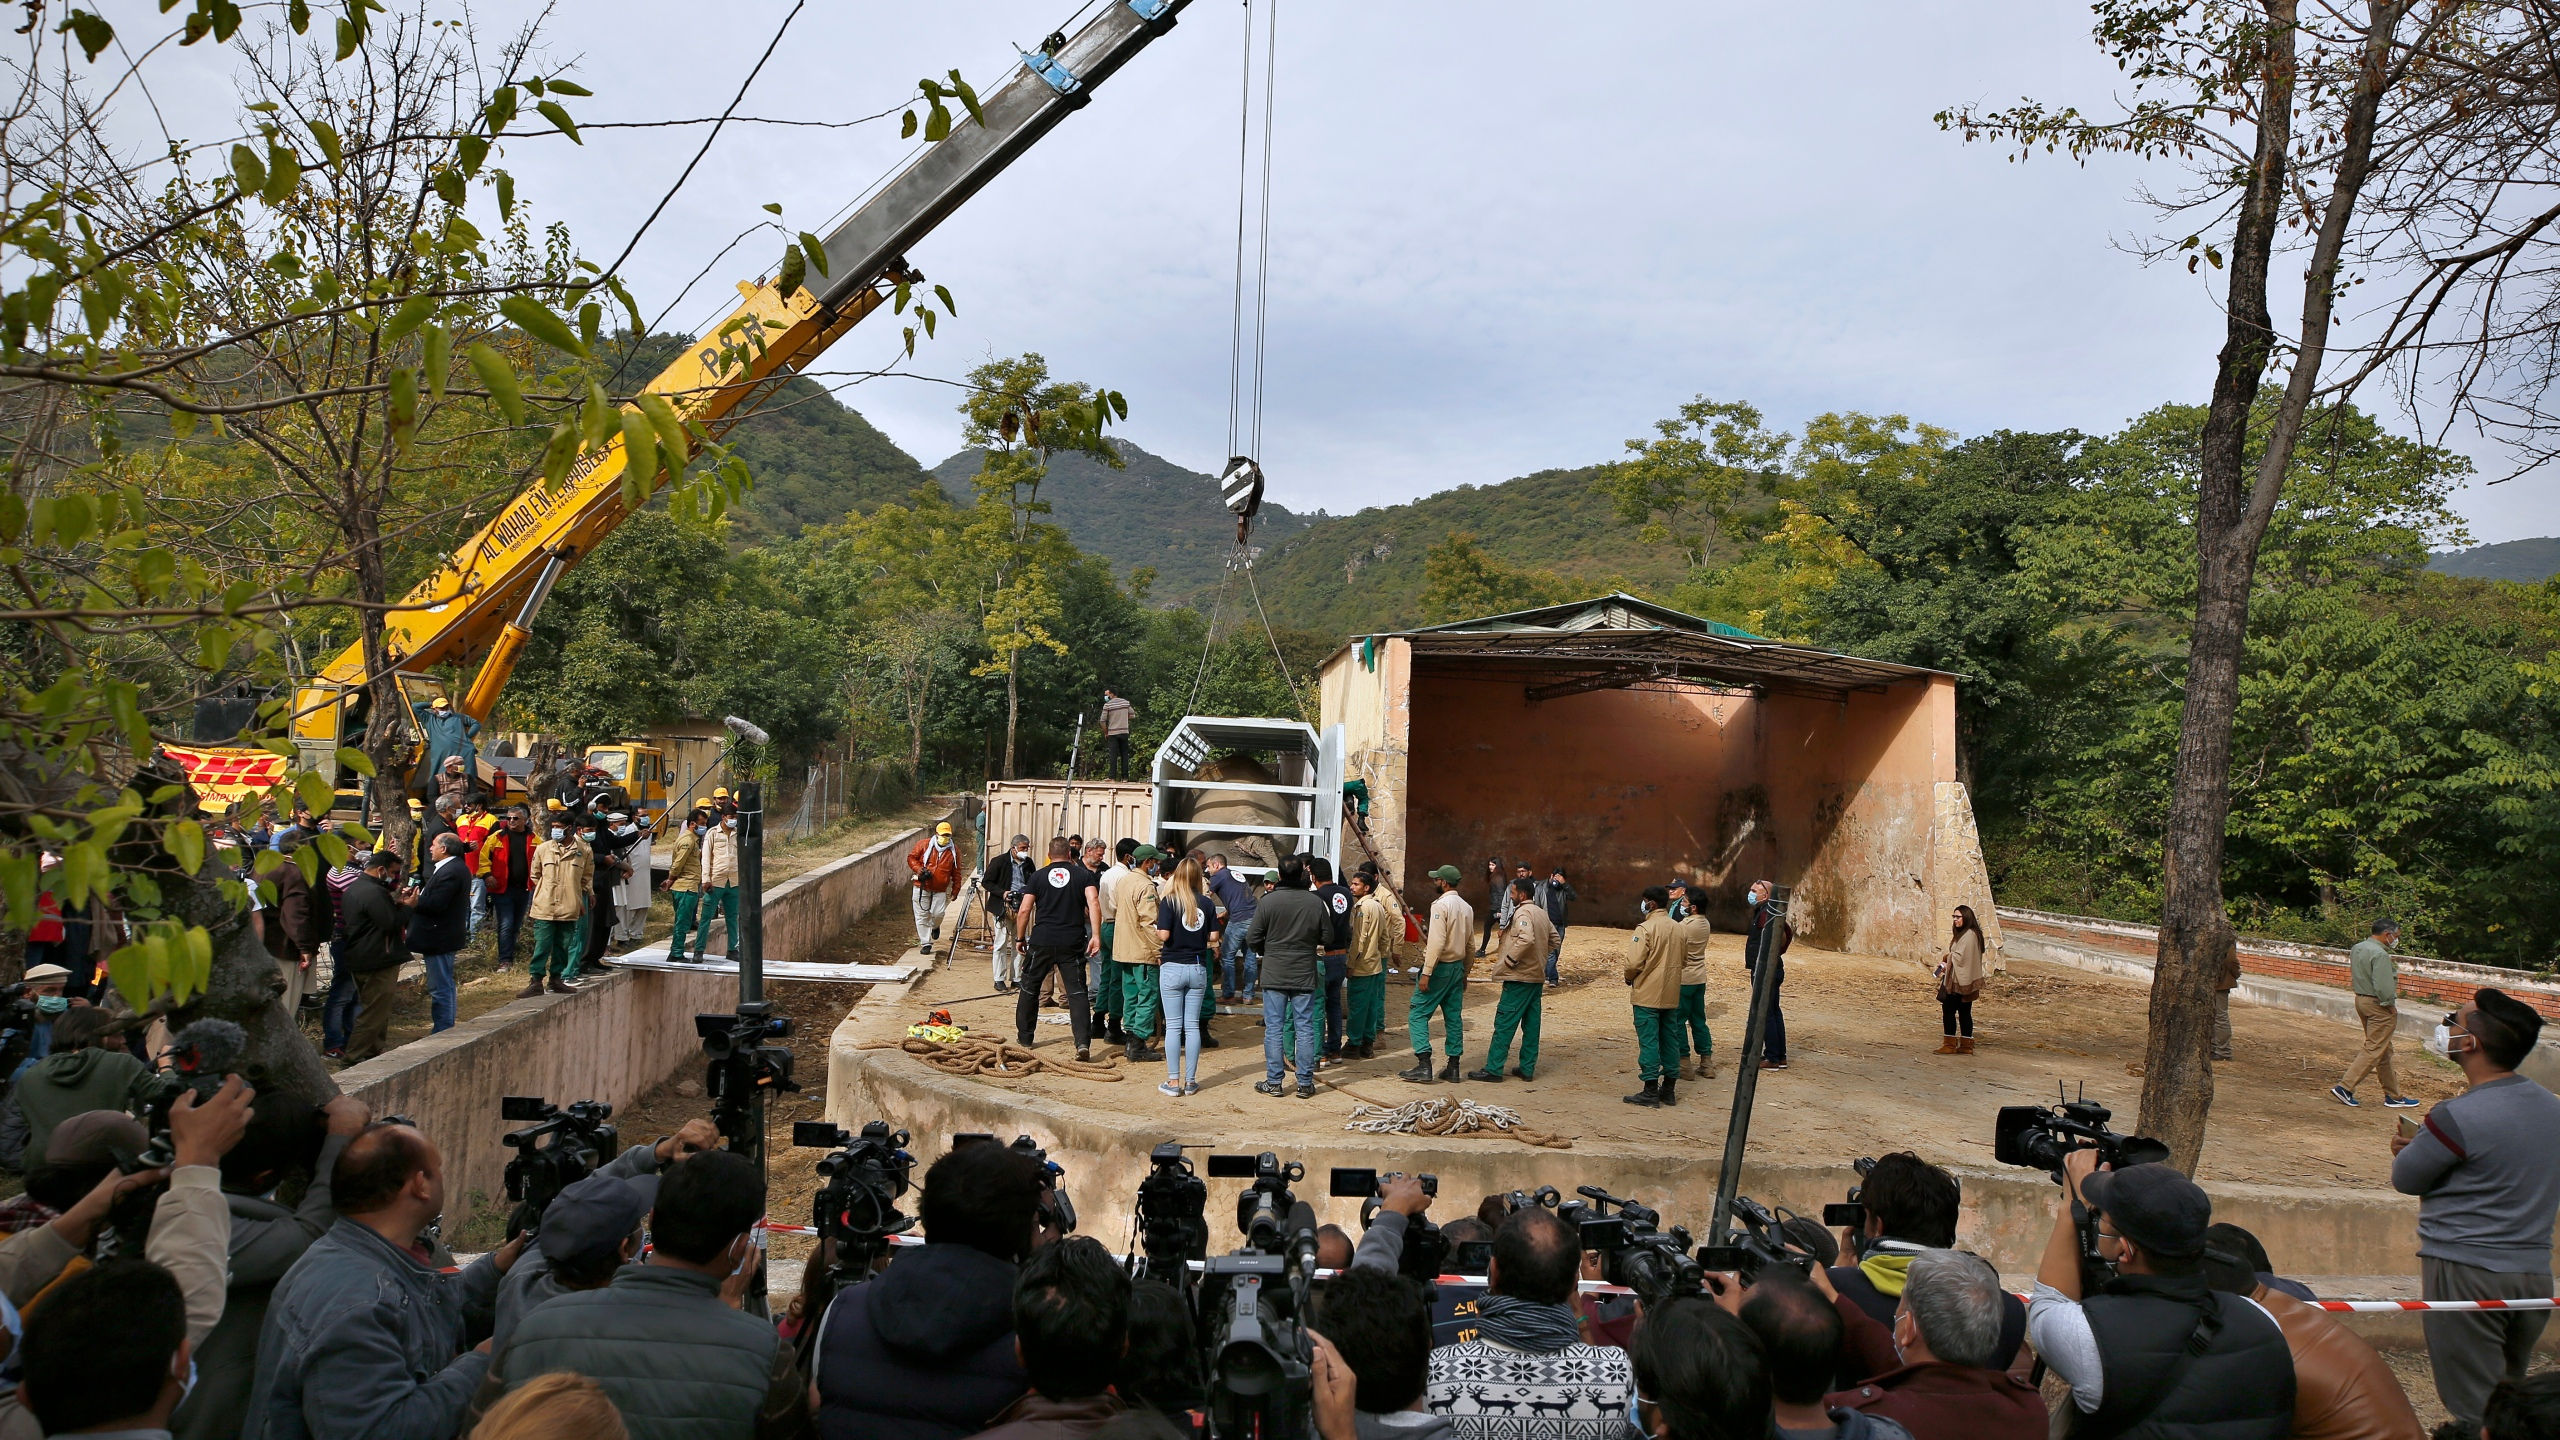 Pakistani wildlife workers and experts from the international animal welfare organization Four Paws use a crane to move a crate carrying an elephant named Kaavan for transporting him to a sanctuary in Cambodia, at the Marghazar Zoo in Islamabad, Pakistan, Sunday, Nov. 29, 2020. (AP Photo/Anjum Naveed)